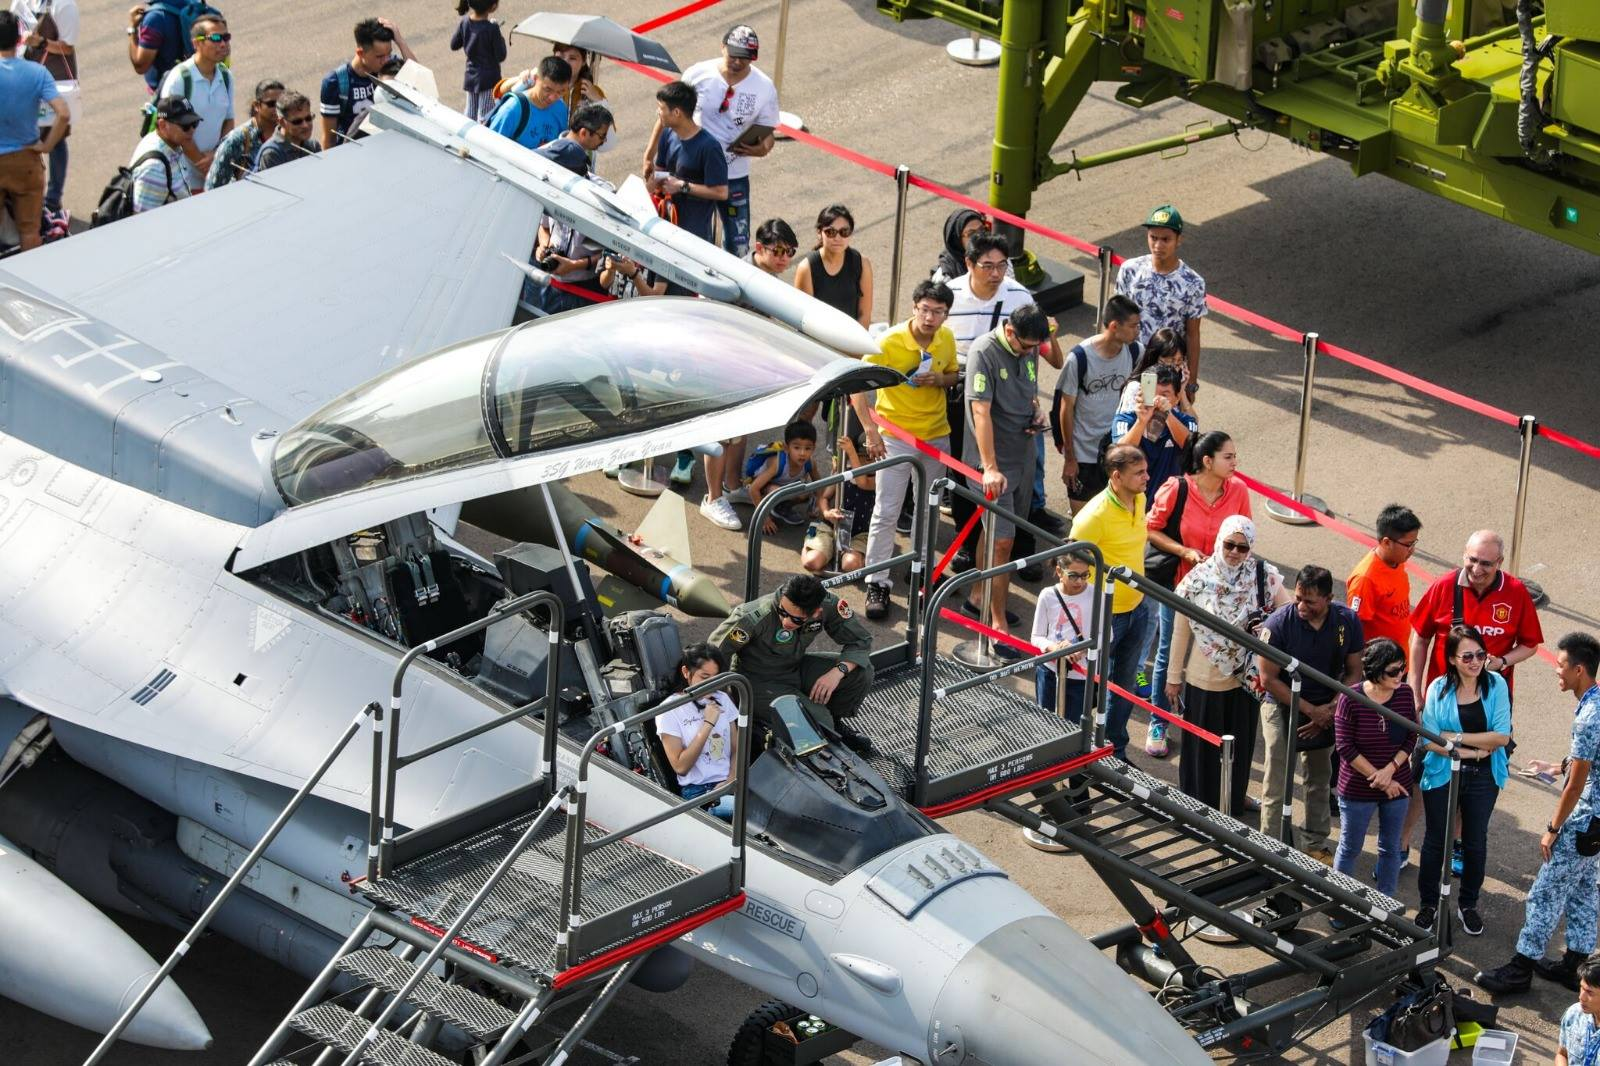 Photo courtesy: Singapore Airshow 2020